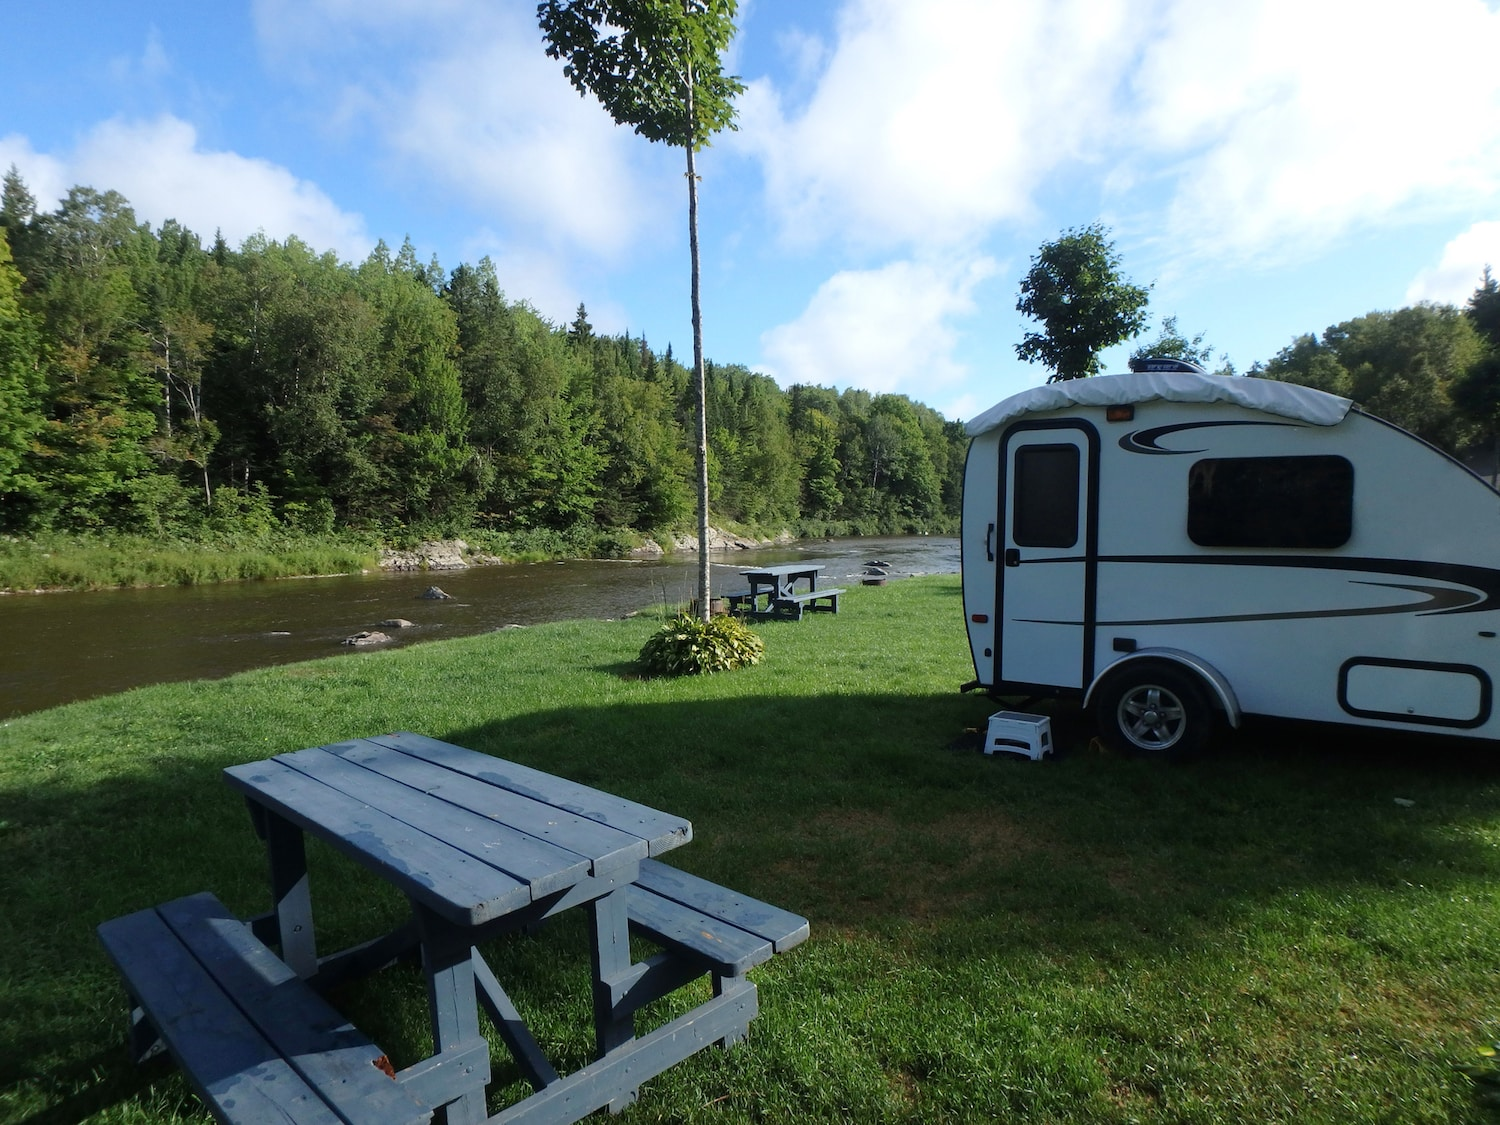 Camping in a small travel trailer